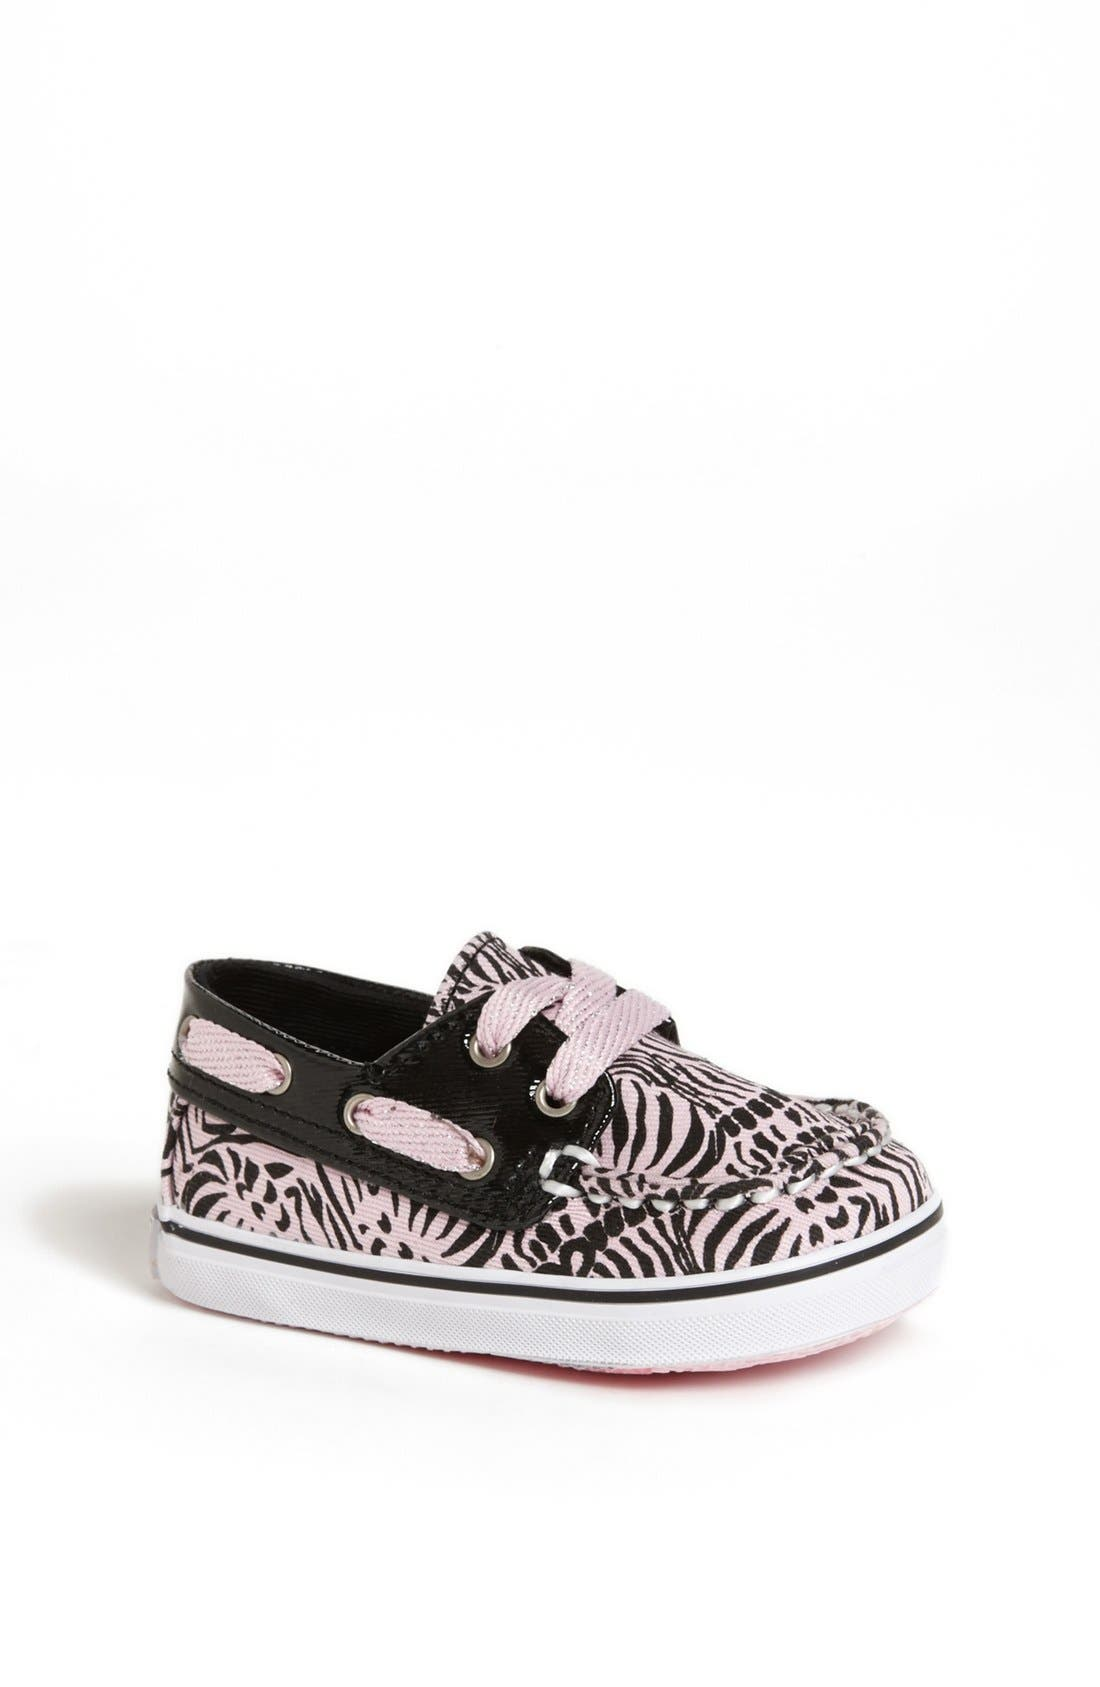 Main Image - Sperry Top-Sider®  Kids 'Bahama' Crib Shoe (Baby)